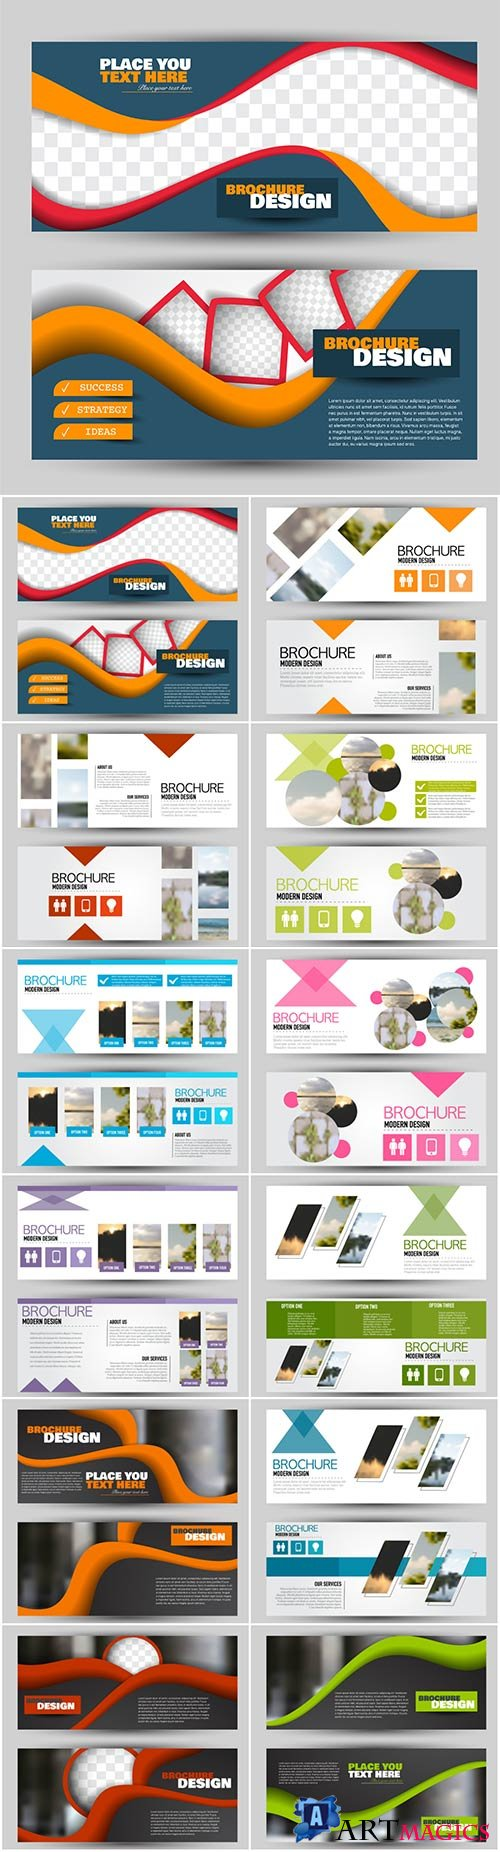 Set of banners for web and advertisement print out, vector horizontal flyer handout design # 6